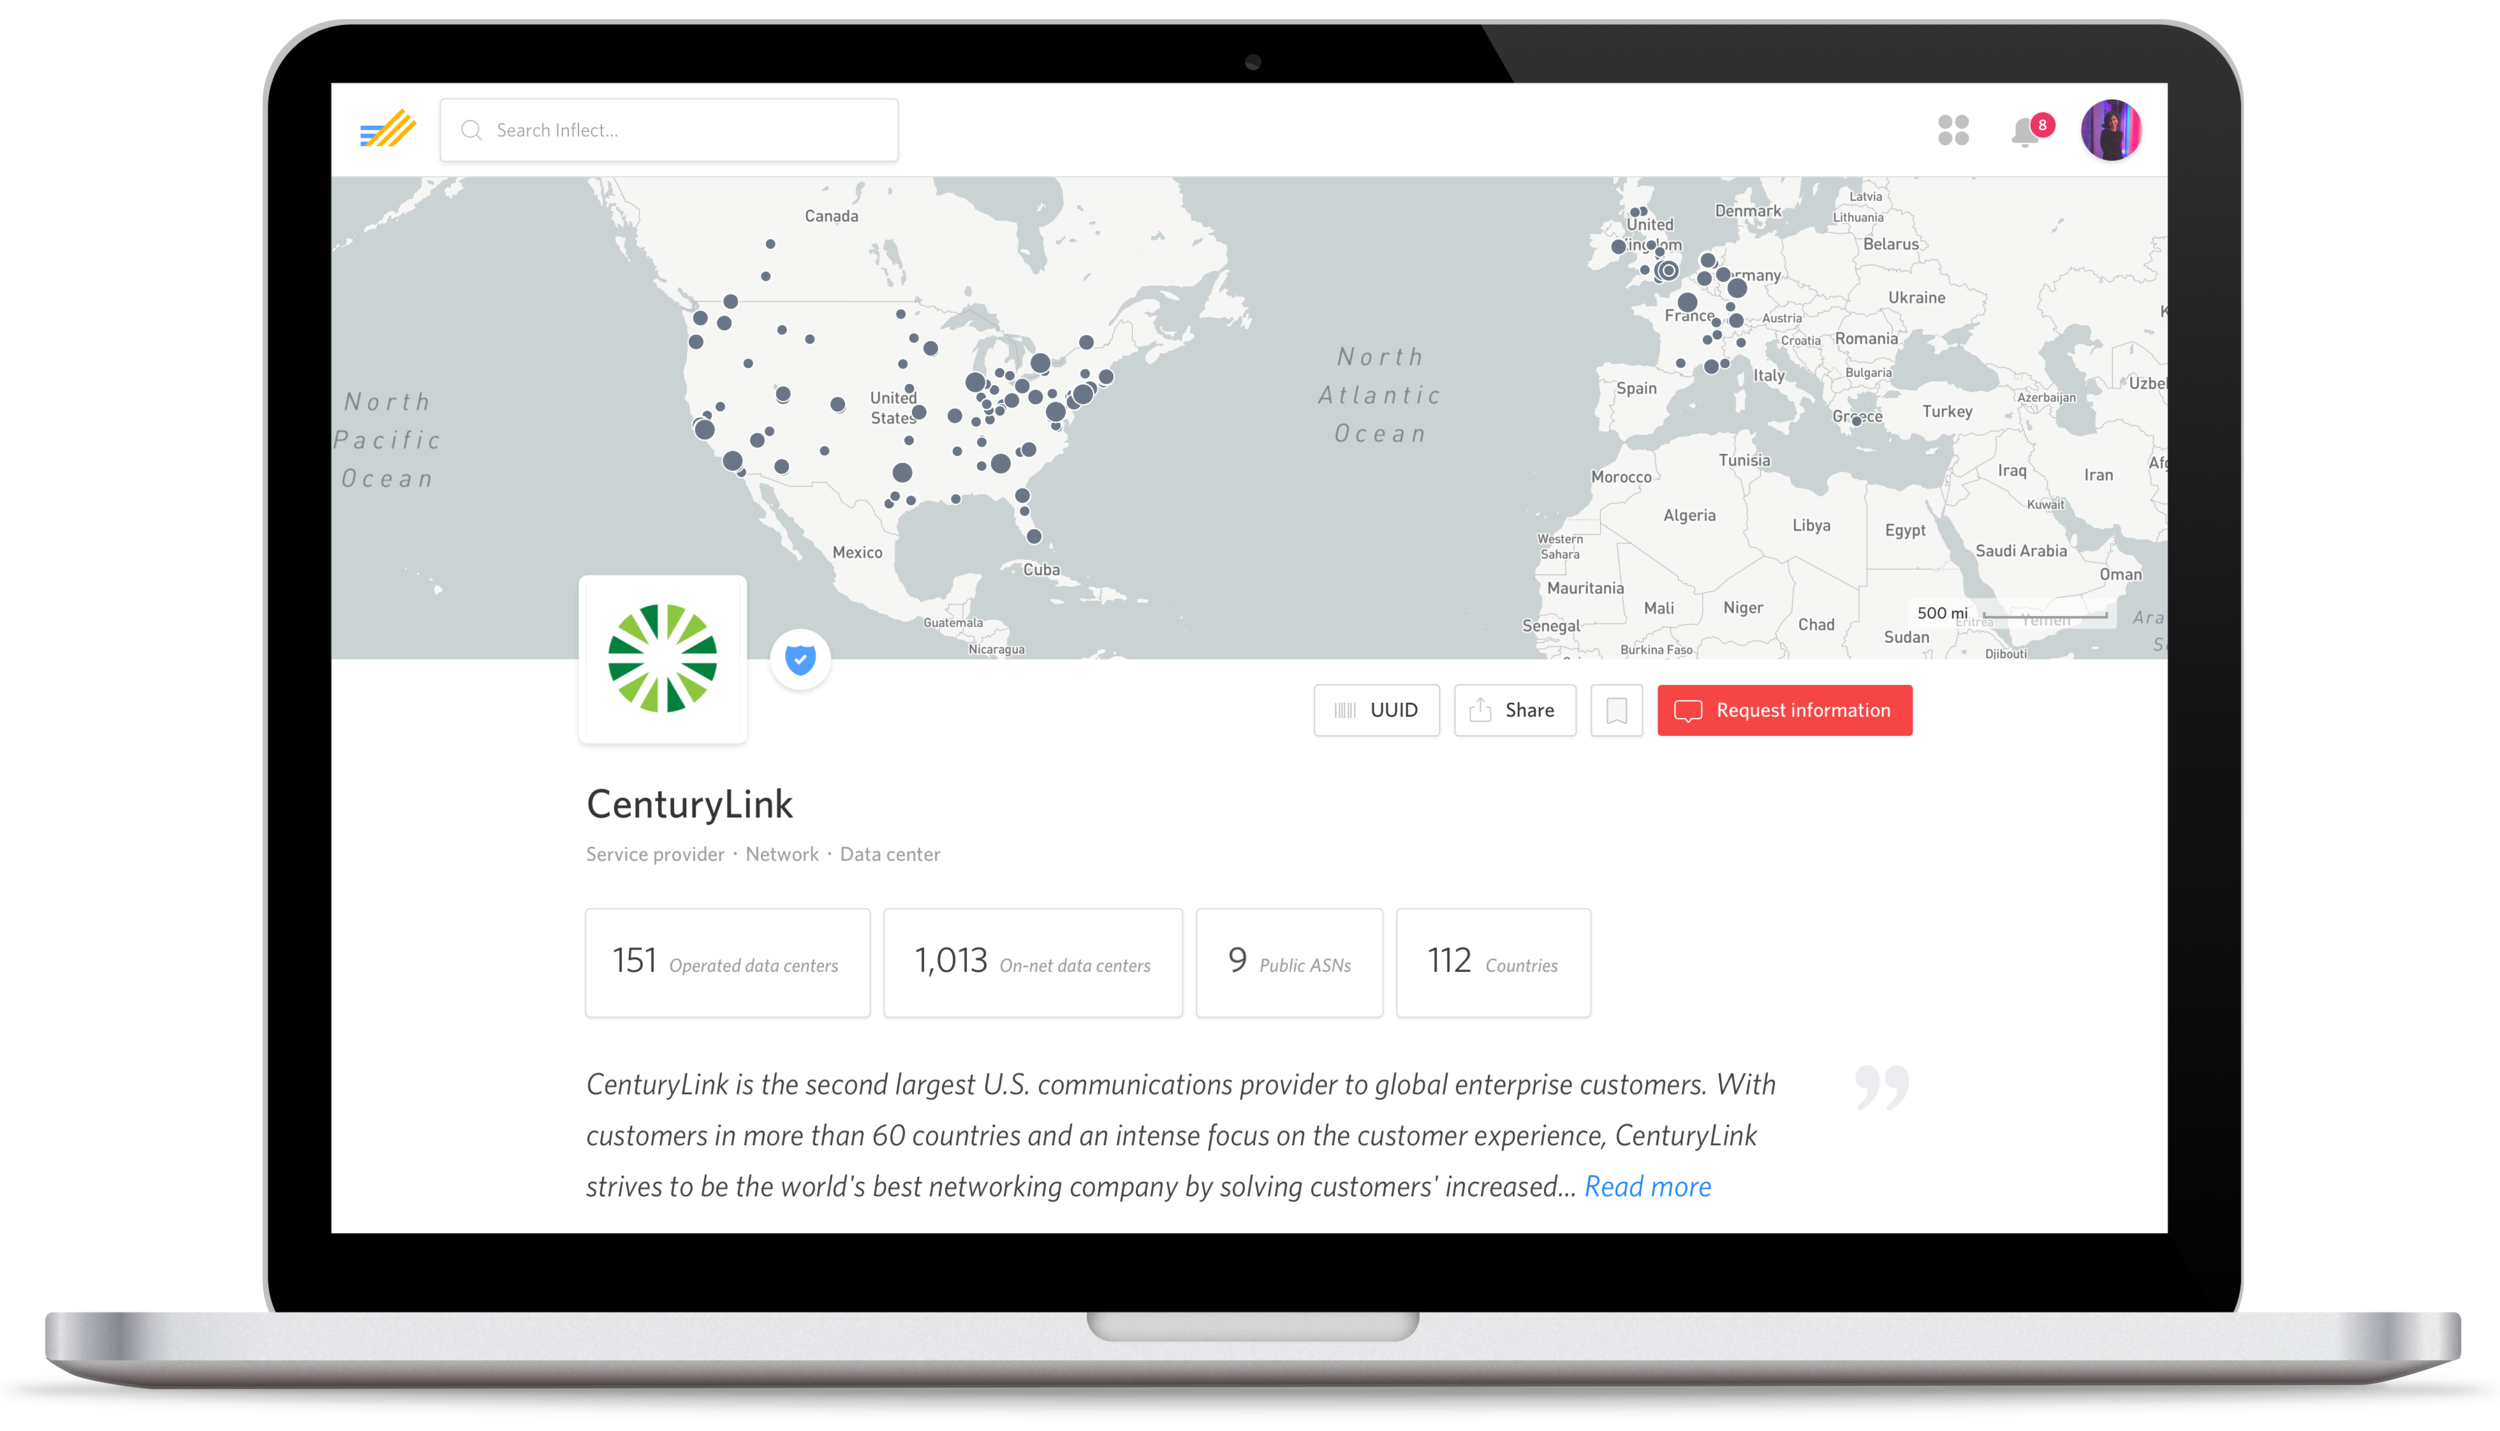 Company page for CenturyLink